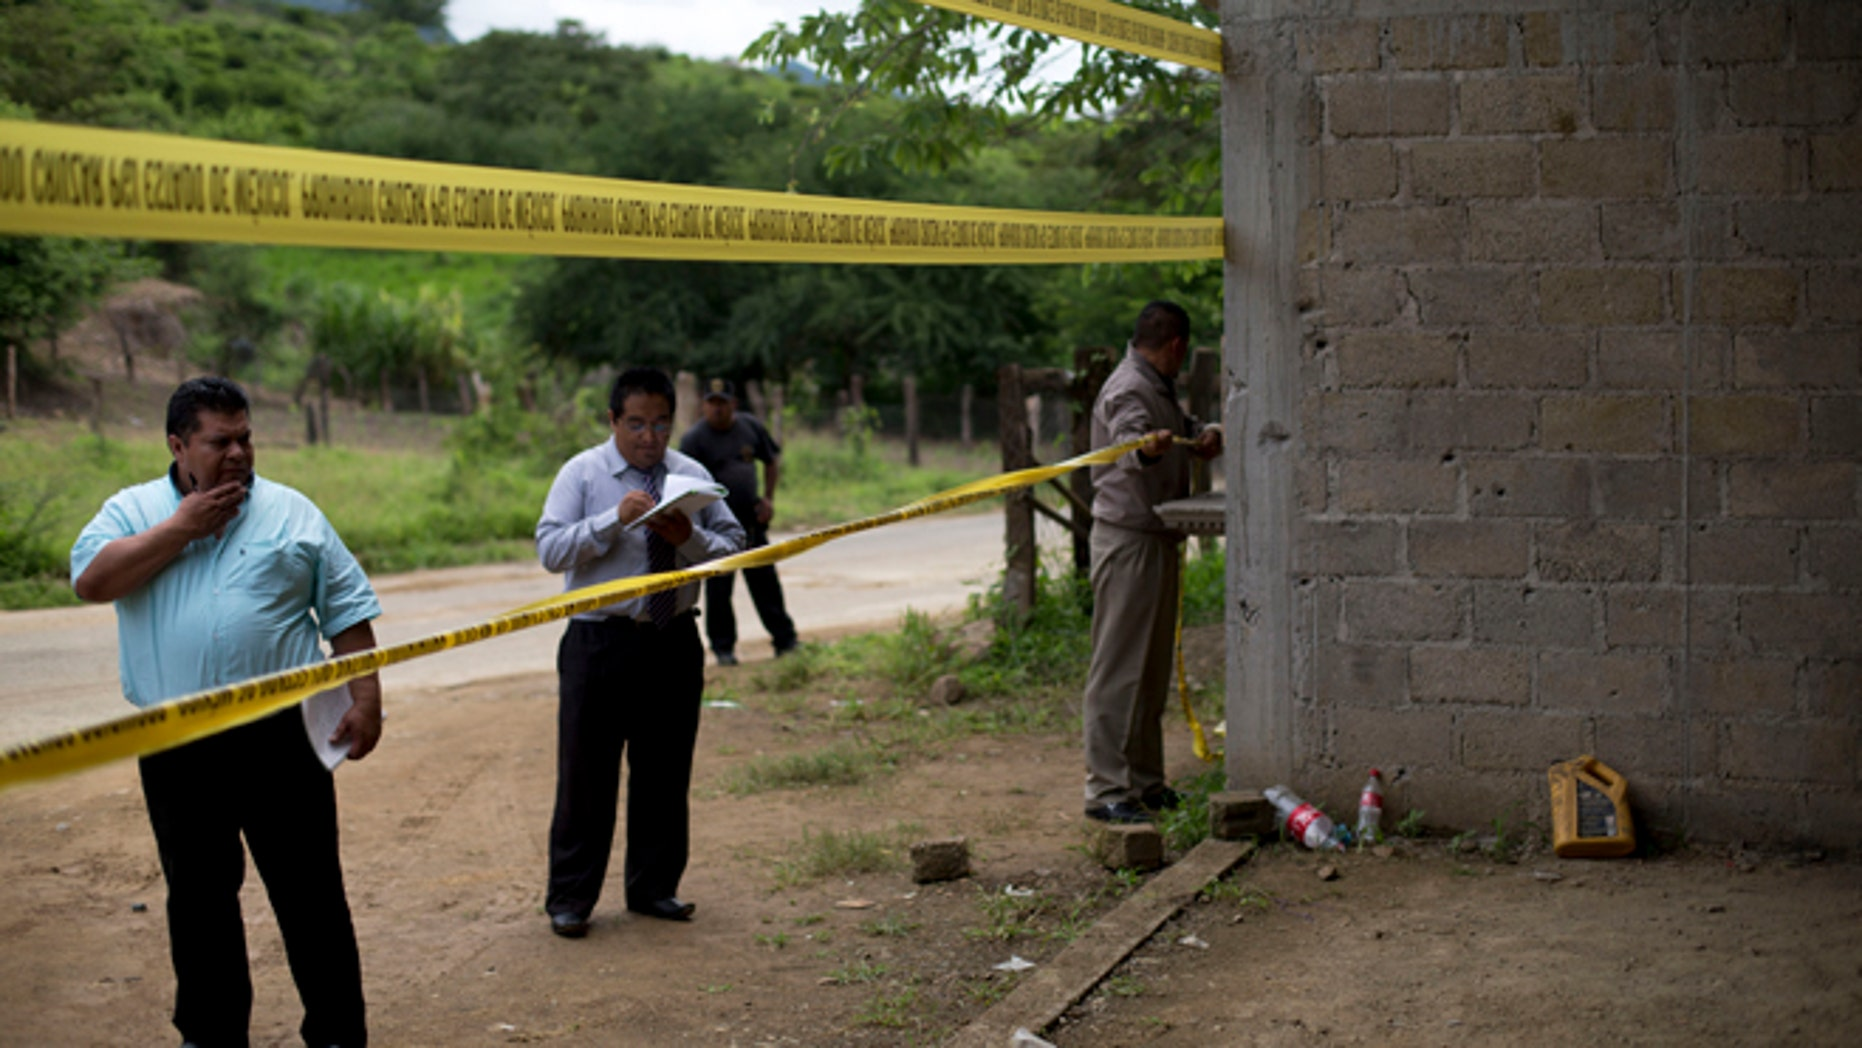 FILE - In this July 3, 2014 file photo, state authorities use crime scene tape to seal off an unfinished warehouse that was the site of a shootout between Mexican soldiers and alleged criminals on the outskirts of the village of San Pedro Limon in Mexico state, Mexico. Three soldiers have been charged with homicide in the June killings of 22 suspected gang members in southern Mexico, Attorney General Jesus Murillo Karam announced on Tuesday Sept. 30 2014. (AP Photo/Rebecca Blackwell, File)